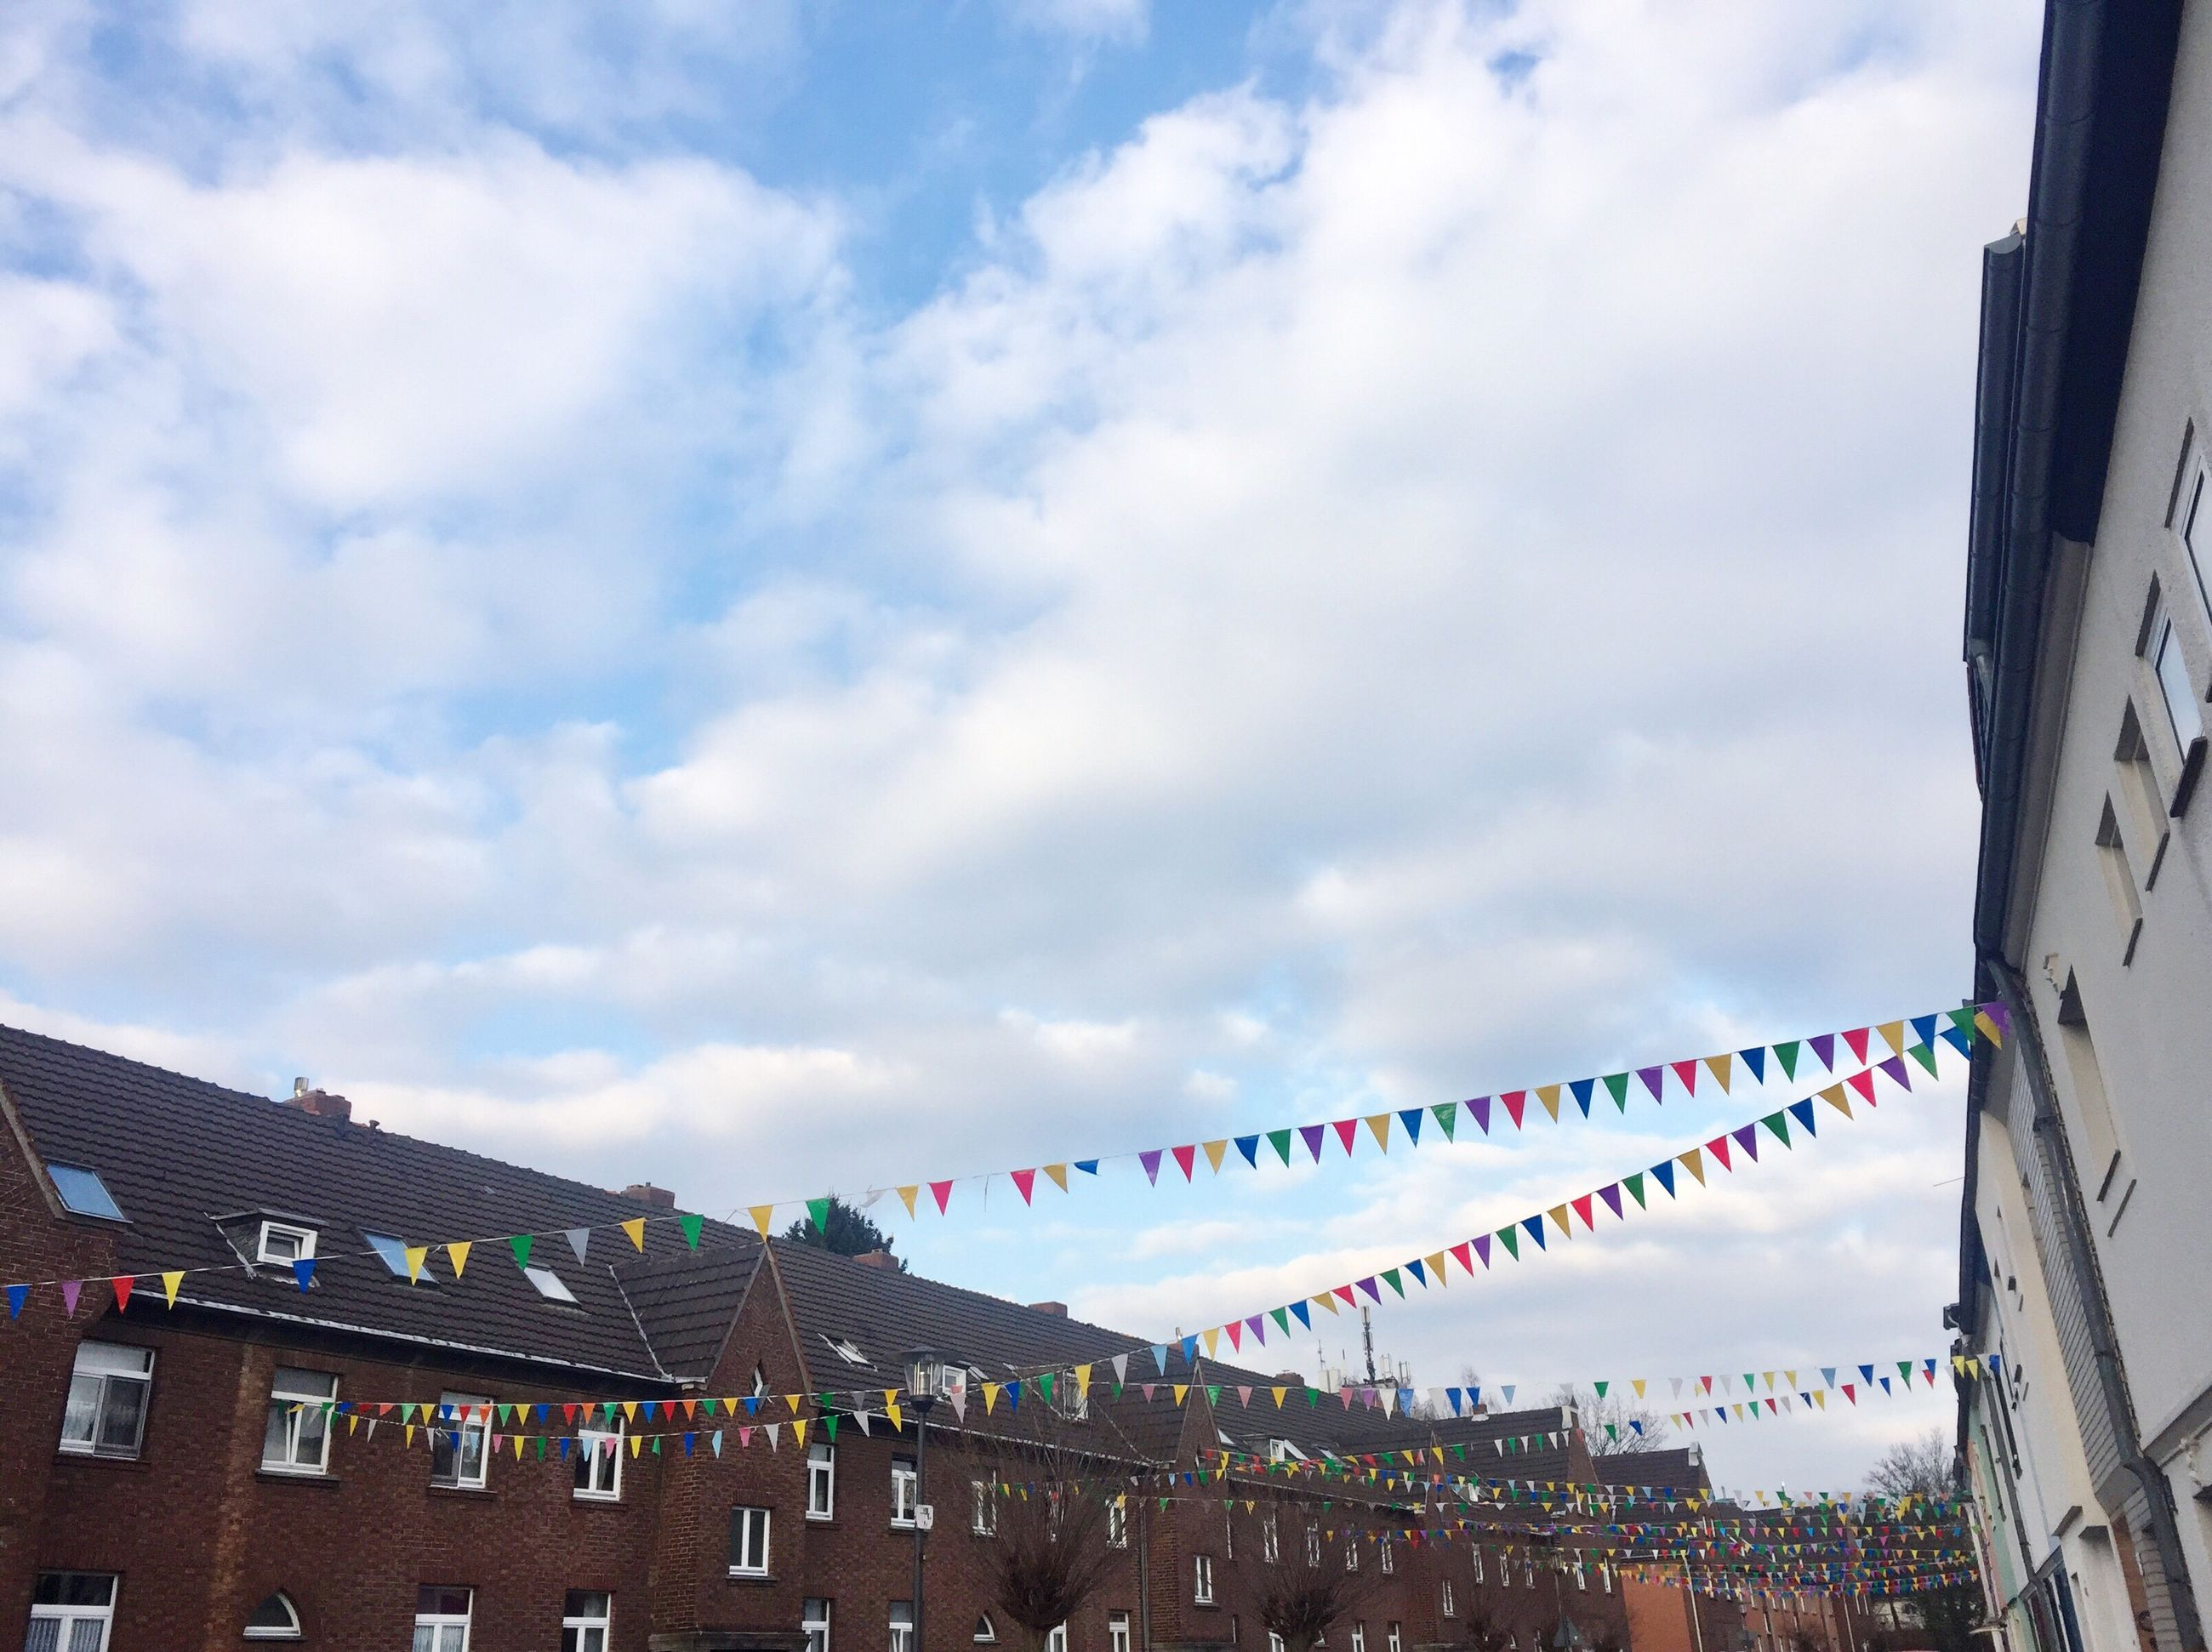 sky, multi colored, hanging, cloud - sky, low angle view, outdoors, no people, day, architecture, flag